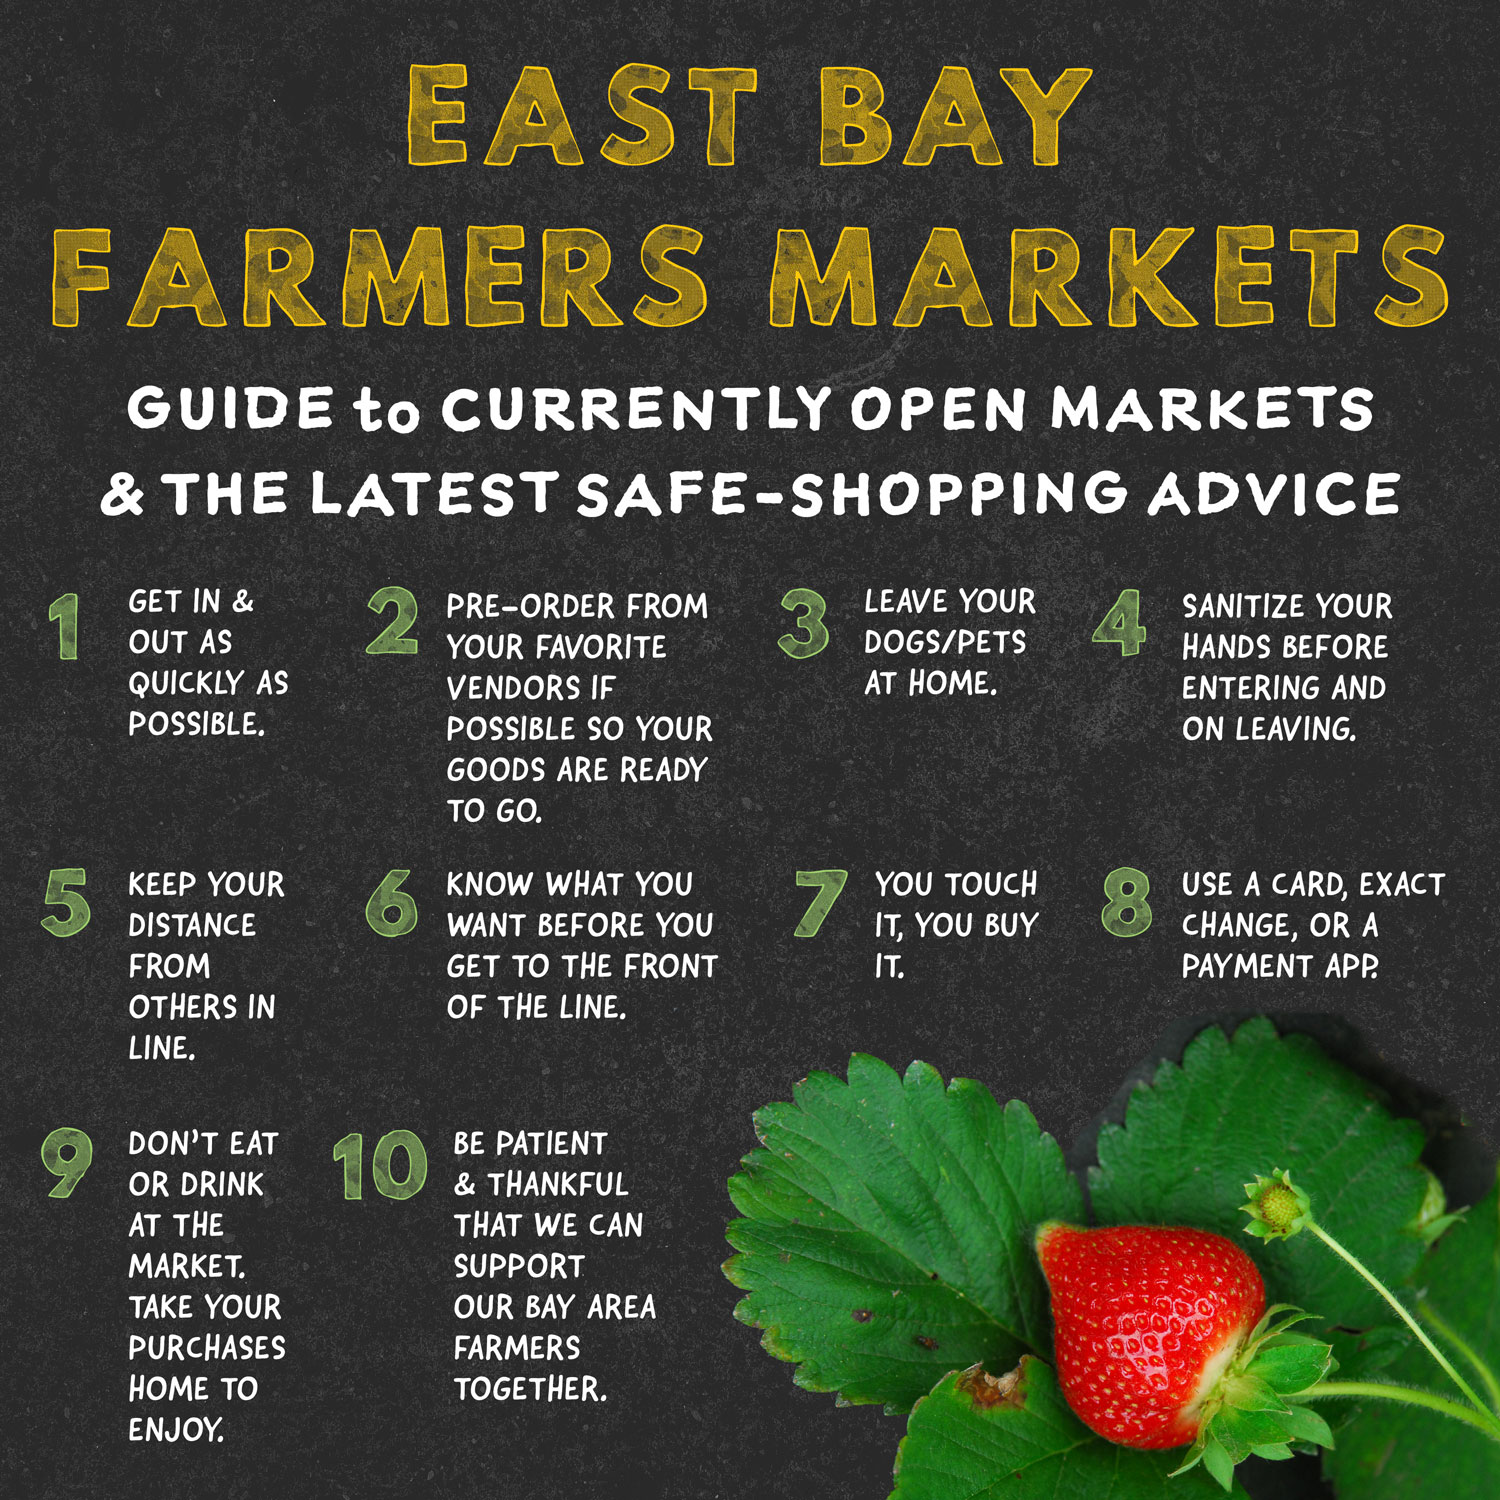 Farmers-Market-Guide-and-Advice